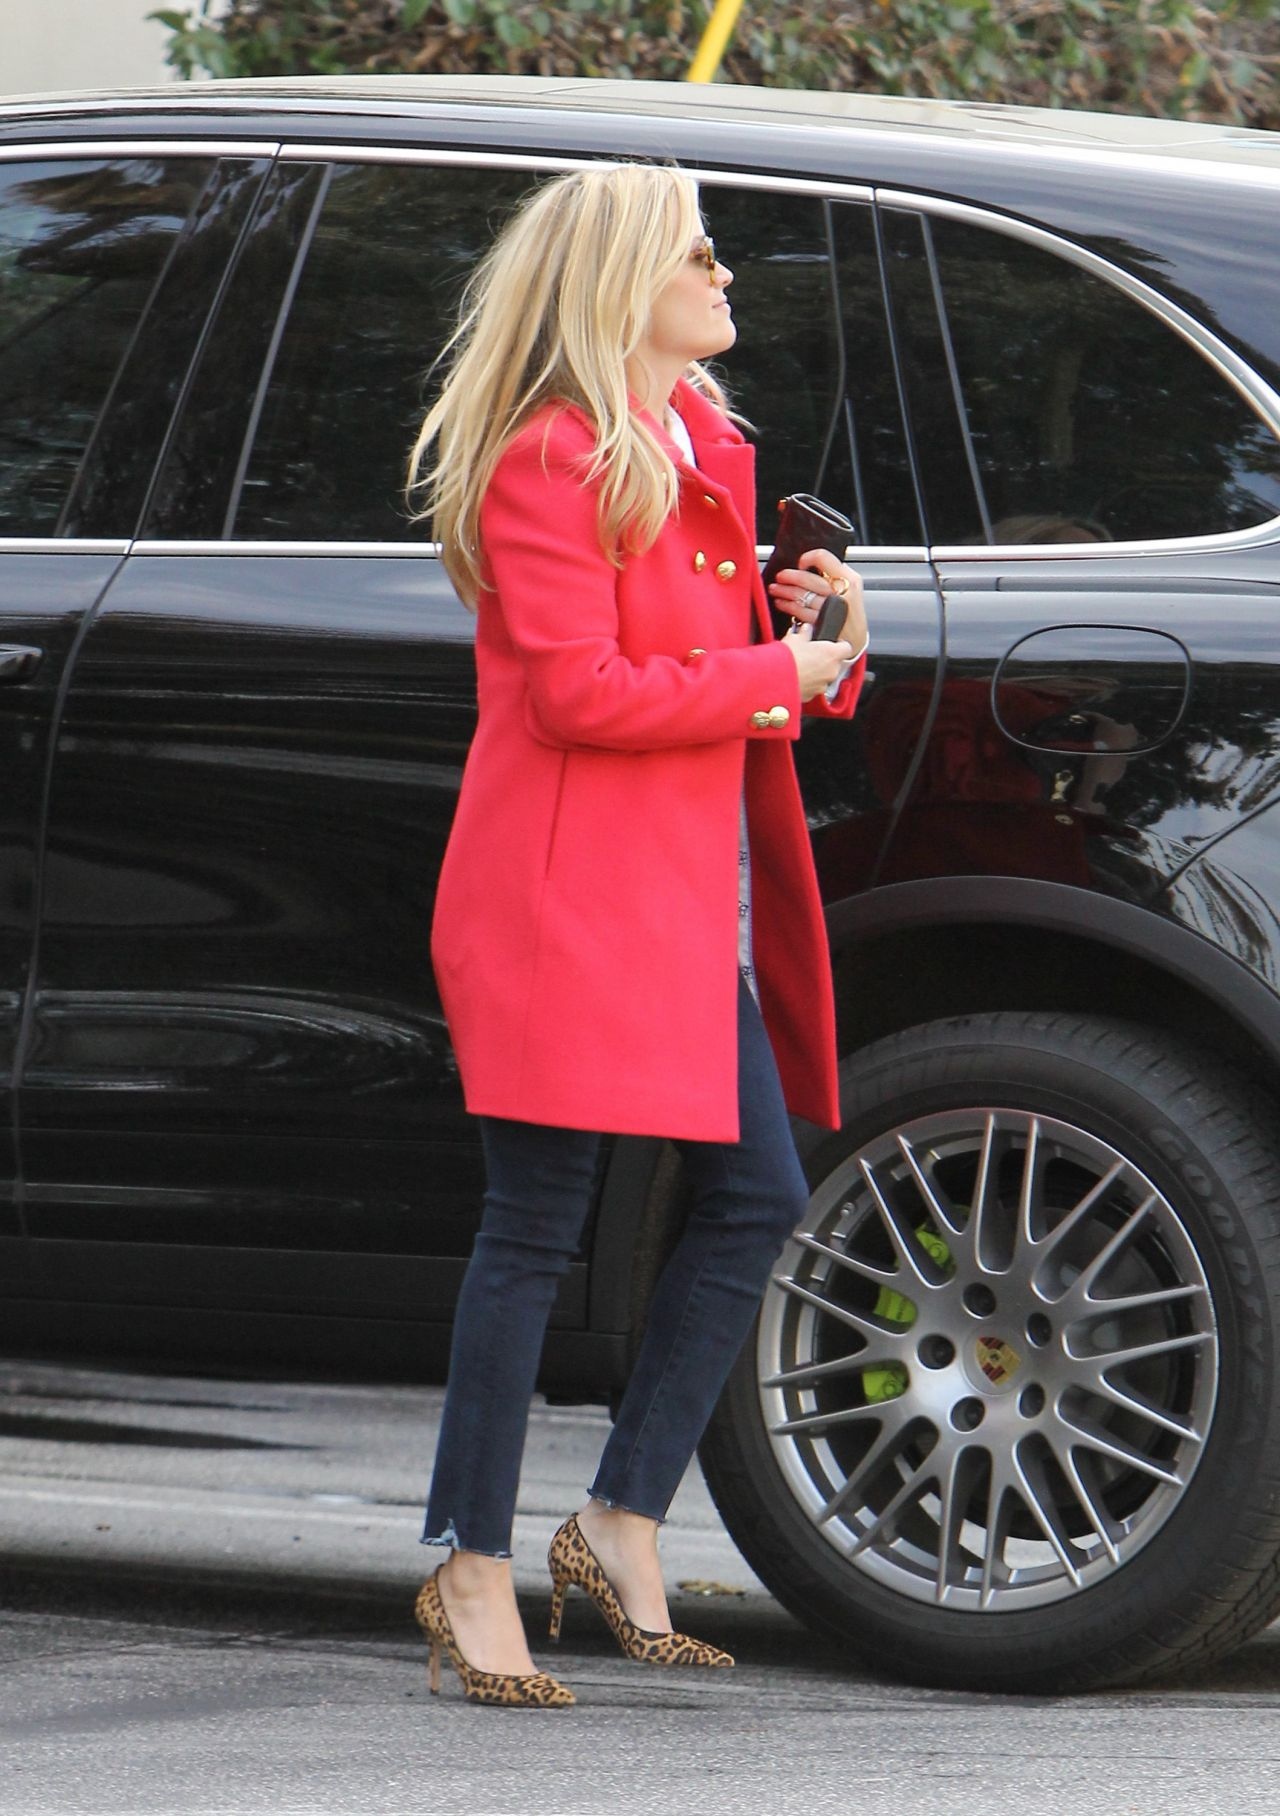 reese-witherspoon-style-out-in-brentwood-12-20-2015_11